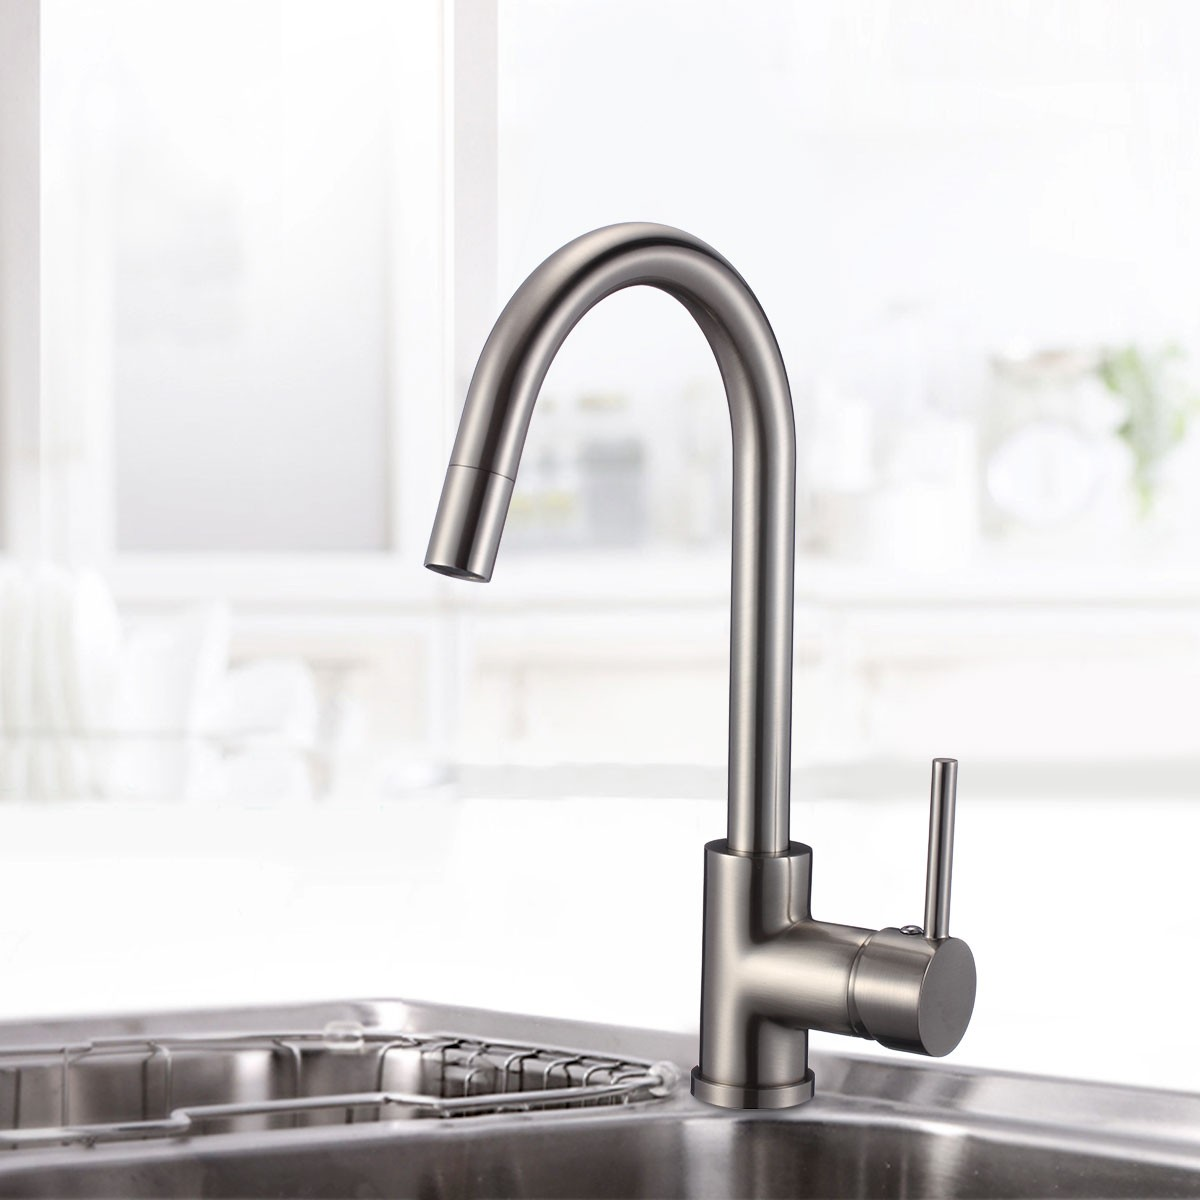 Brushed Nickel Finished Brass Kitchen Faucet (82H37-BN)